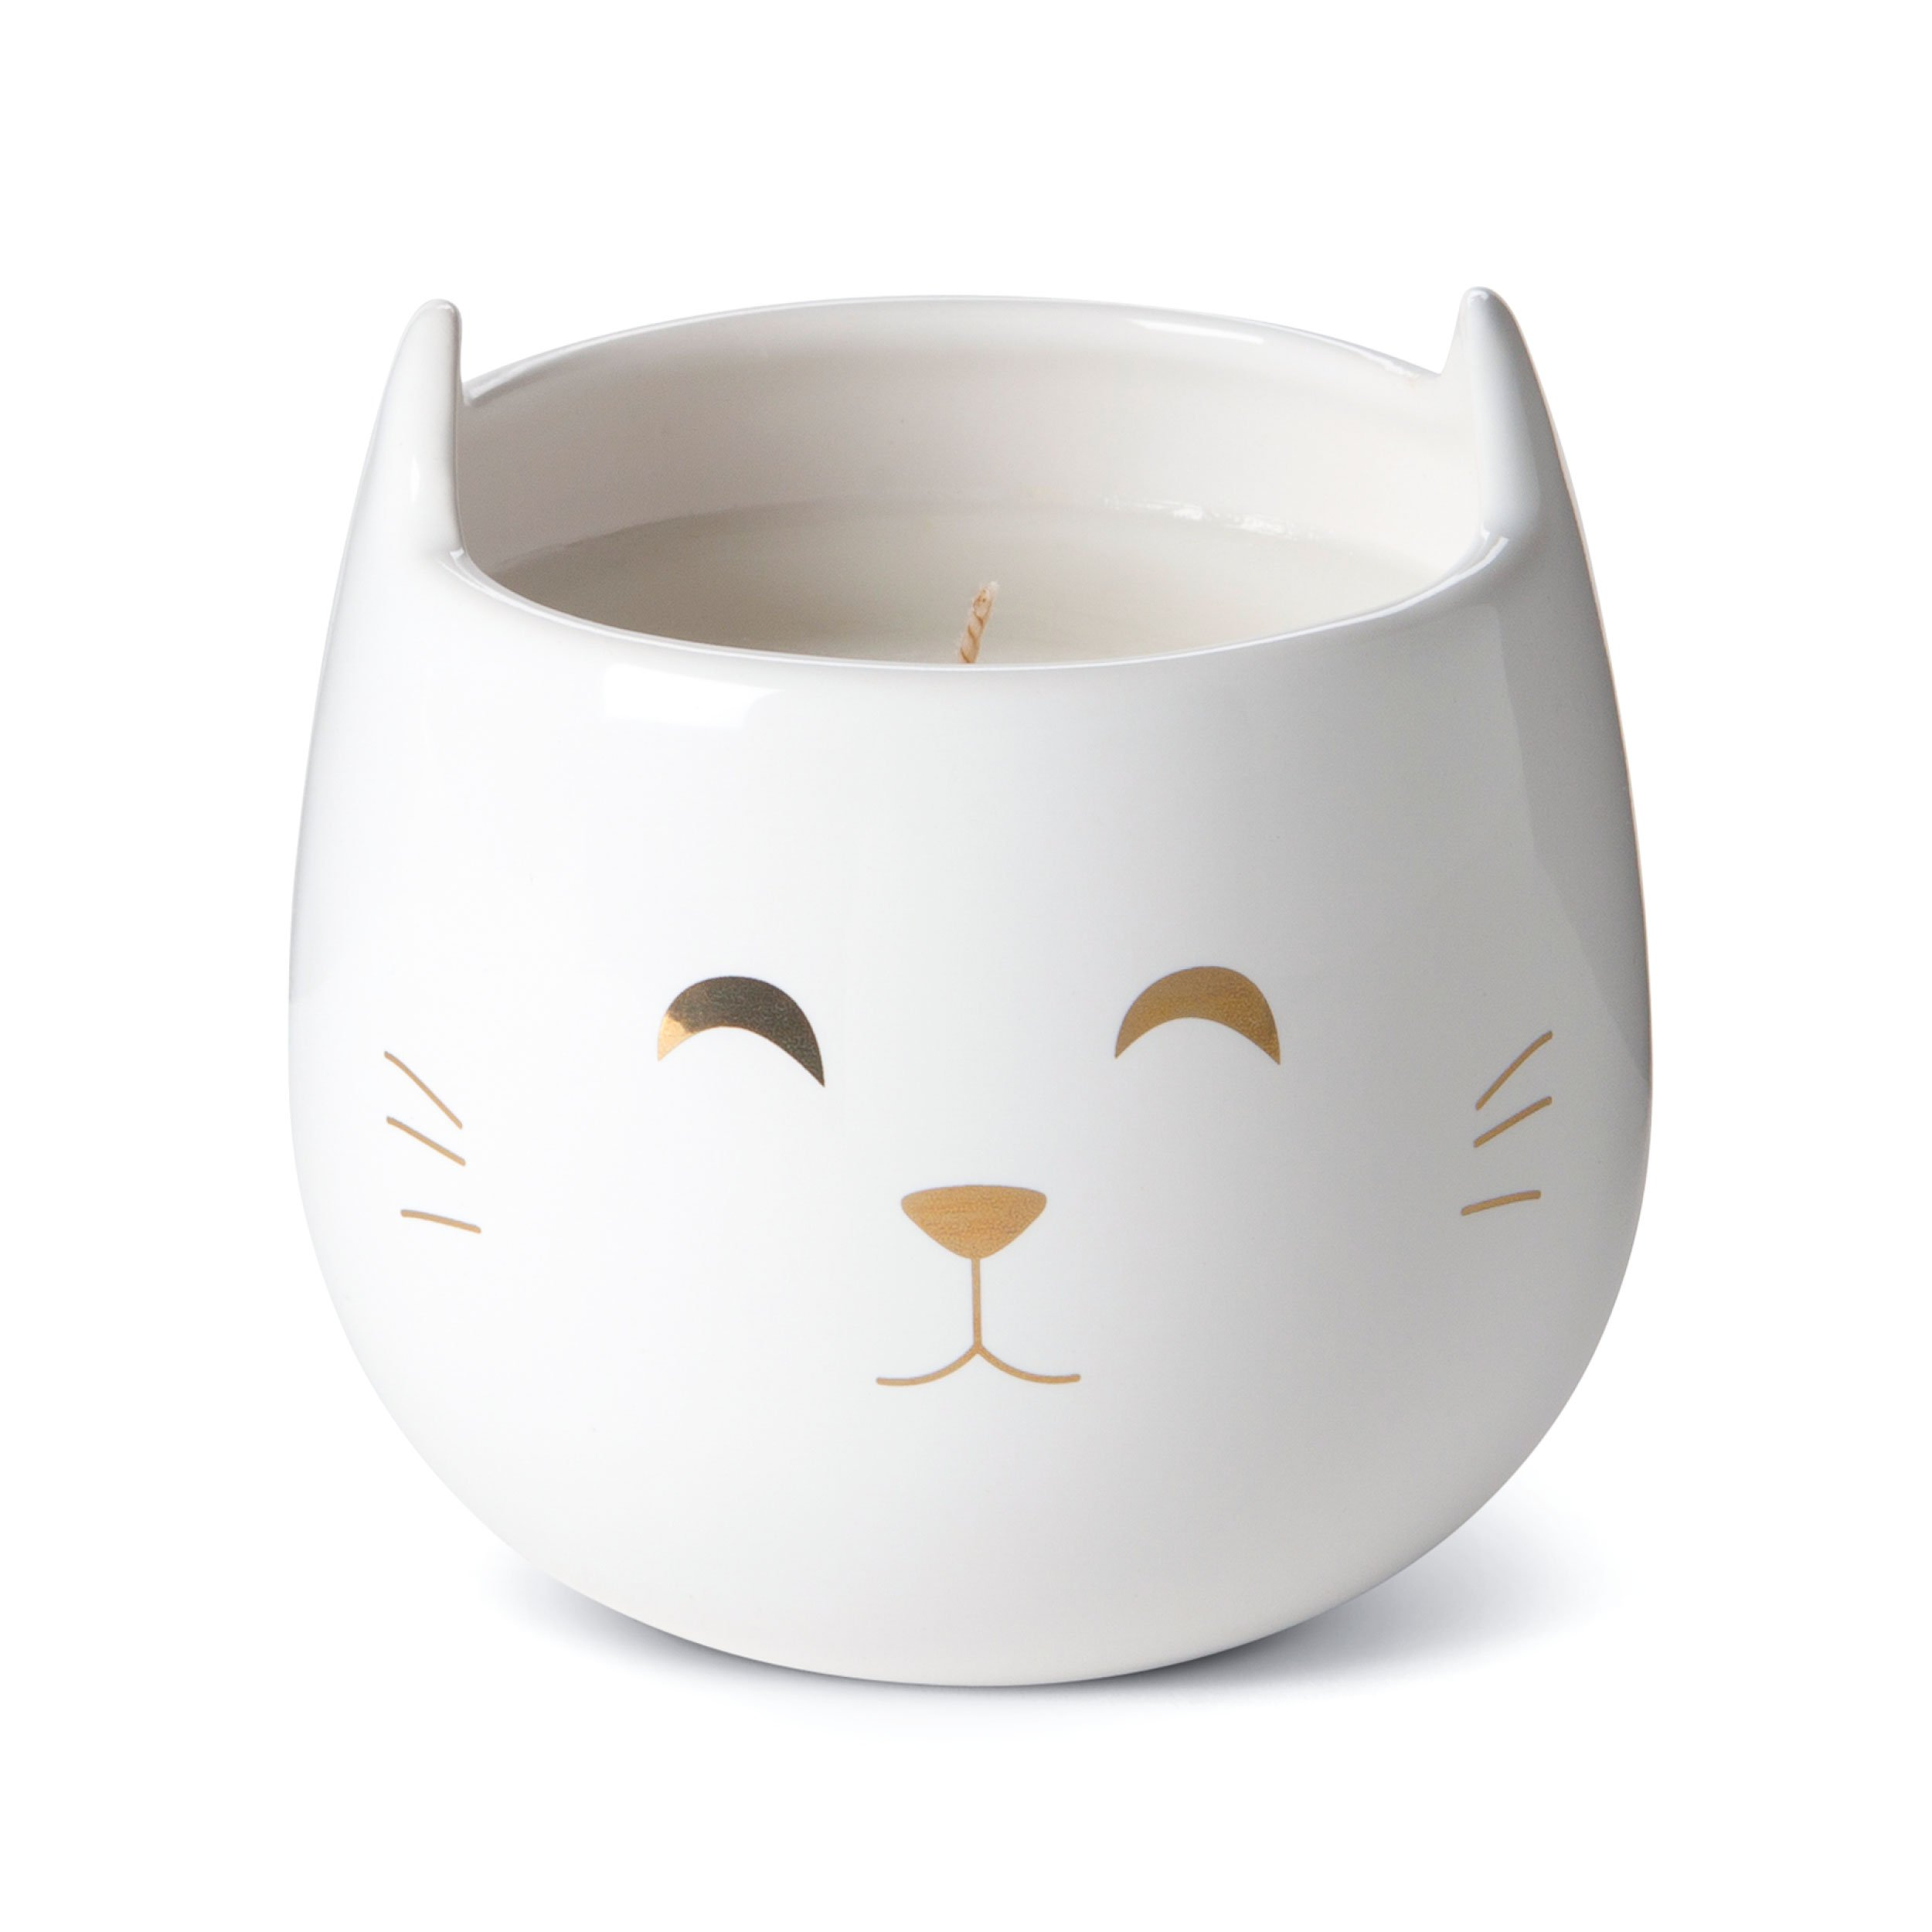 Tri-coastal Design Small Cute Scented Wax Candles Ceramic Cat Shaped Candle for Aromatherapy, Stress Relief and Relaxation - Calming Vanilla Caramel Aroma Scented Luxury Candle - 12 Oz